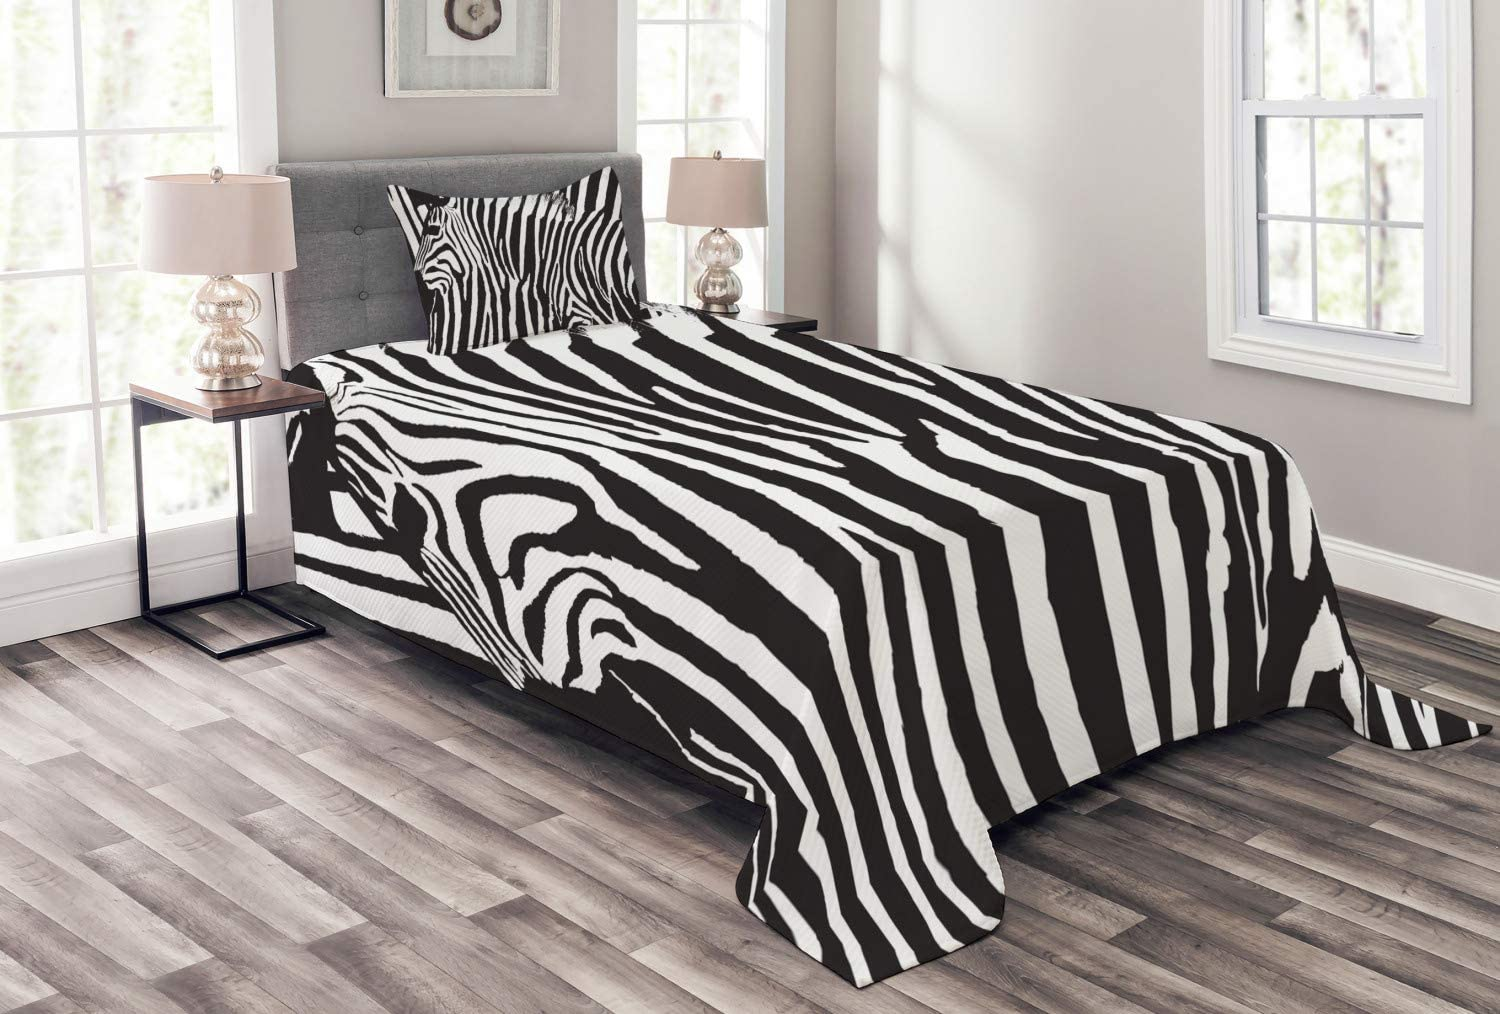 Lunarable Zebra Print Bedspread, Wild Zebra Design with Animal Profile Blended Over Itself Abstract Pattern, Decorative Quilted 2 Piece Coverlet Set with Pillow Sham, Twin Size, Black White